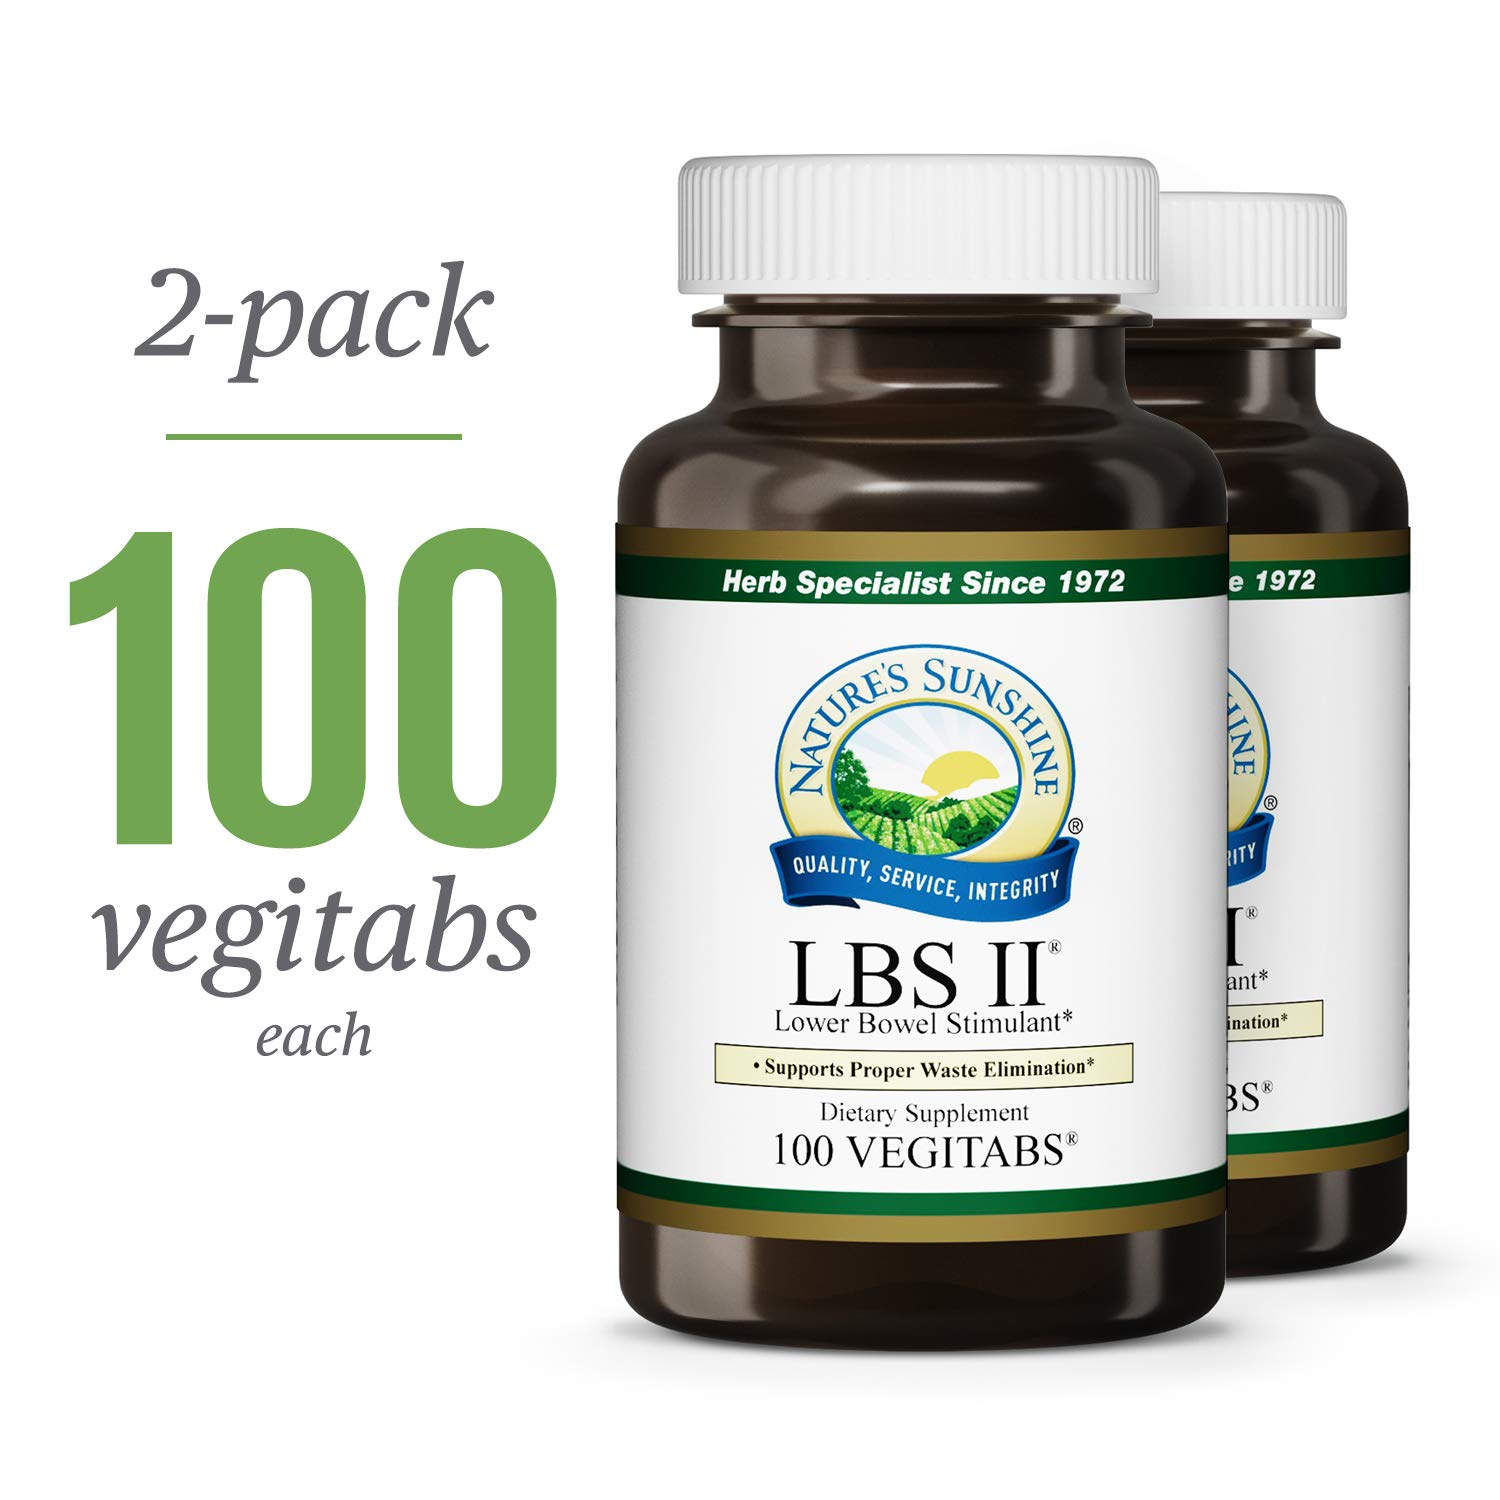 Nature's Sunshine LBS II, 100 Vegitabs, 2 Pack | Herbal Laxative with Cascara Sagrada Bark Supports The Digestive System and Lower Bowel Health by Nature's Sunshine